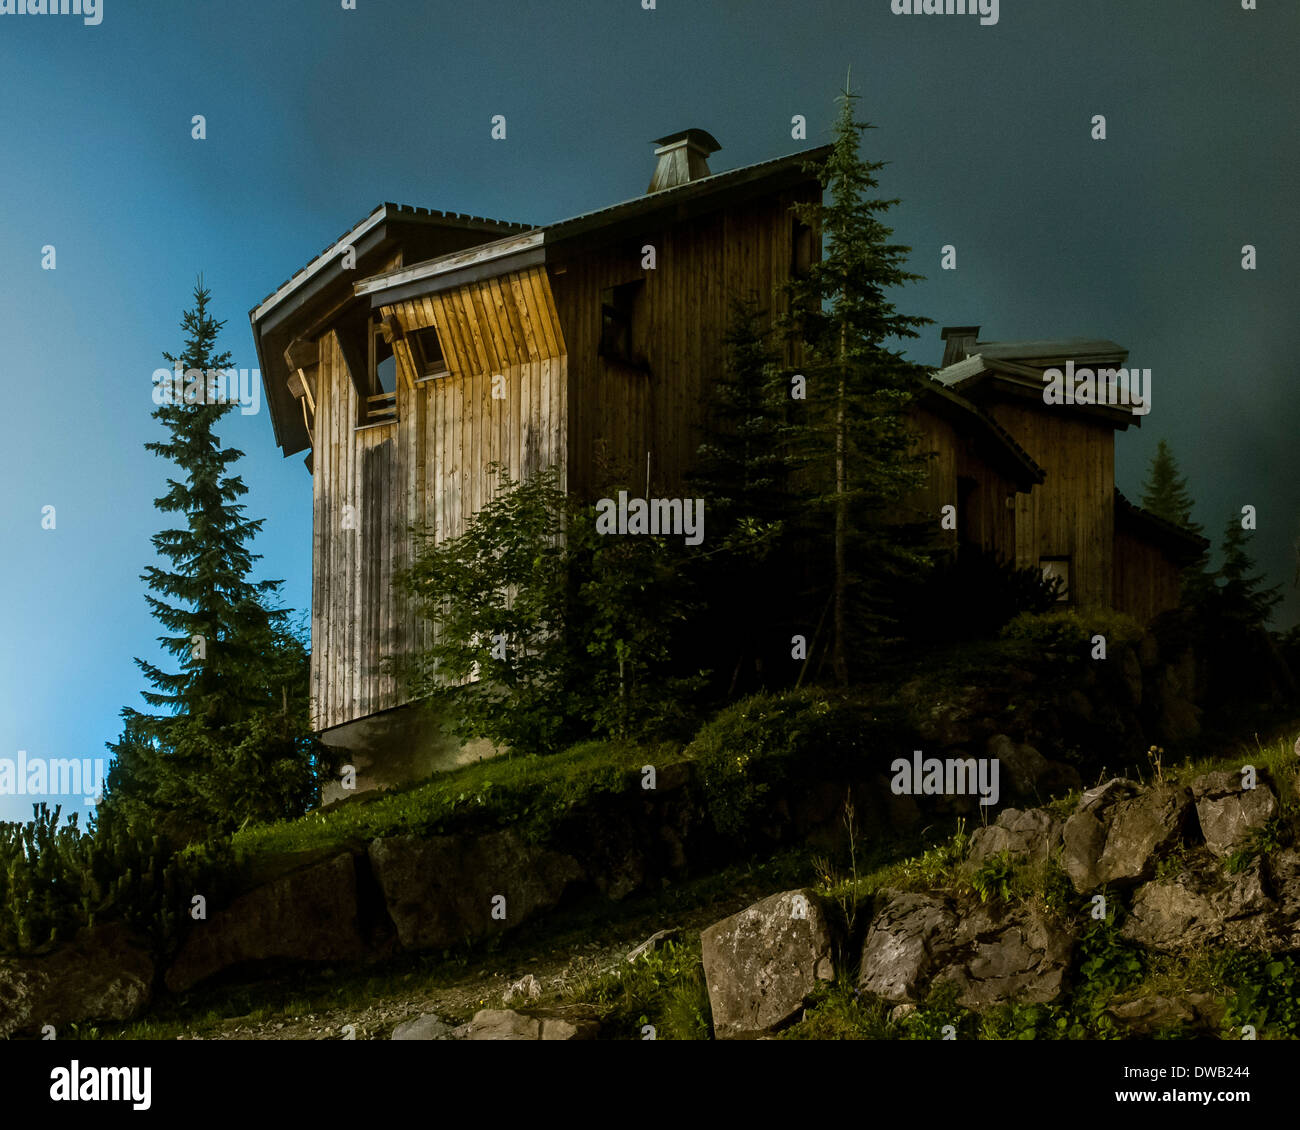 Avoriaz, Avoriaz, France. Architect: Jacques Labro, Simon Cloutier, Jean-Jacques Orzoni, 2014. Stock Photo